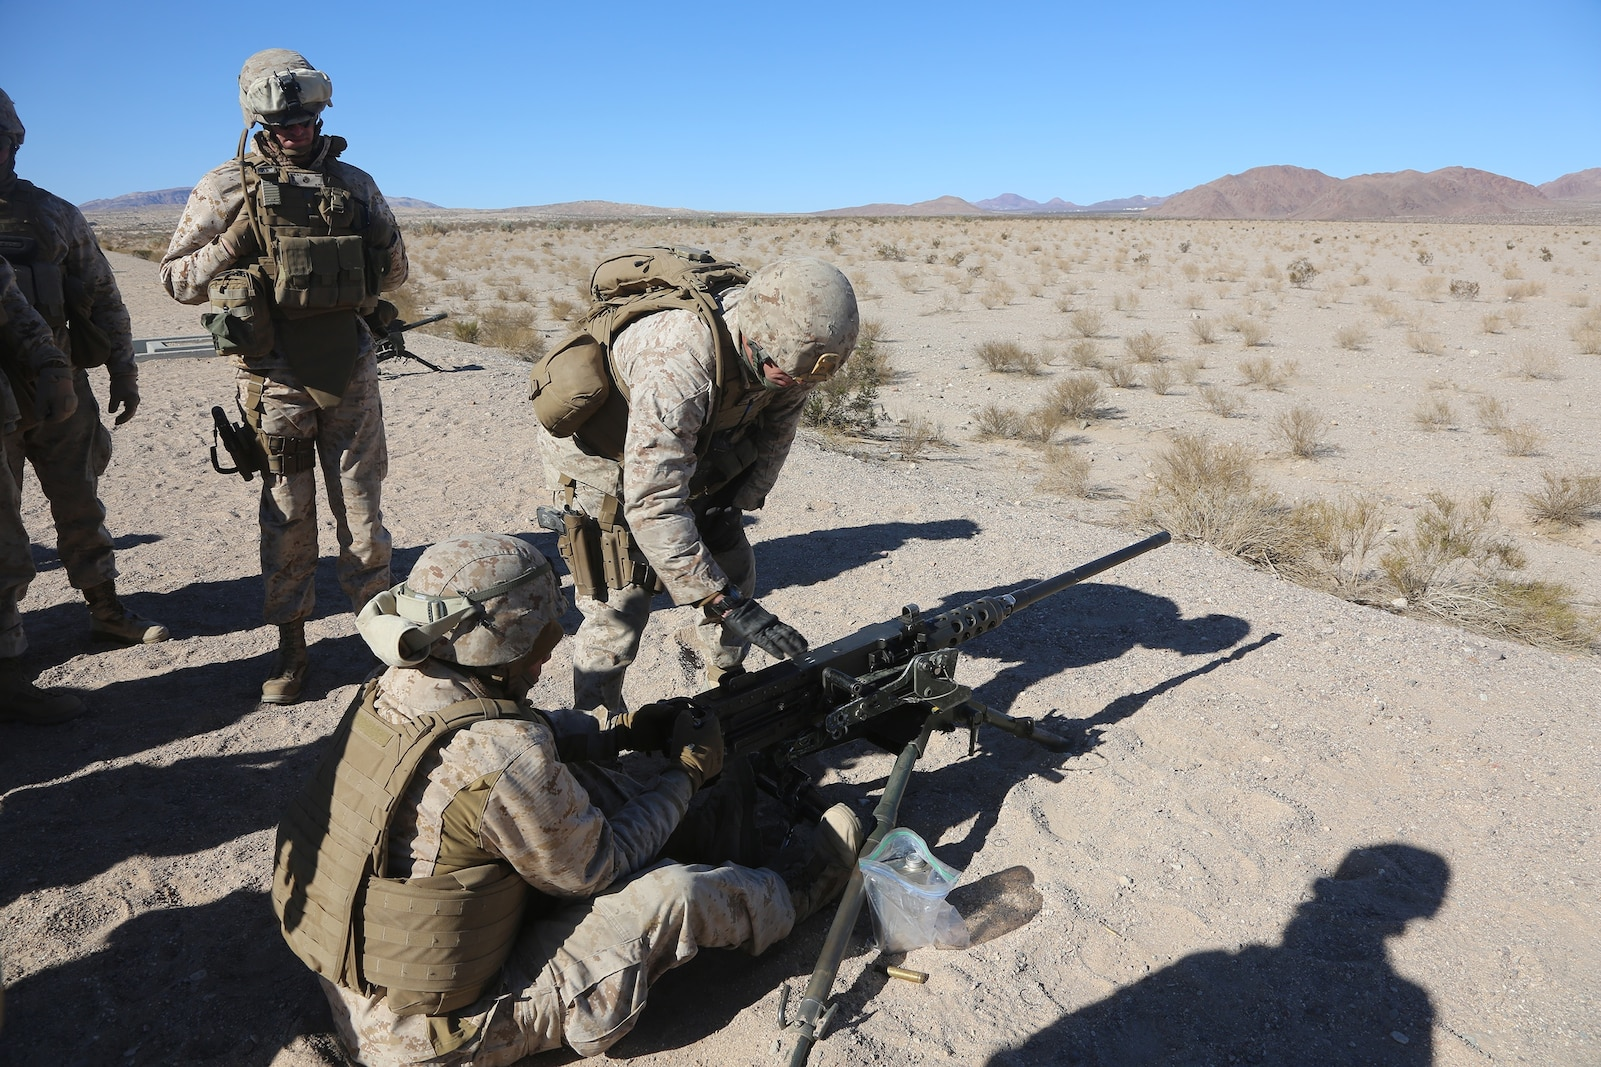 Marines with Motor Transportation Company, Combat Logistics Battalion 5, Combat Logistics Regiment 1, 1st Marine Logistics Group, operate a .50 caliber machine gun as part of sustainment training leading up to Exercise Steel Knight 2014 aboard Marine Air Ground Combat Center Twentynine Palms, Calif., Dec. 9, 2013. SK14 is an annual exercise designed to prepare 1st Marine Division for deployment with the Marine Air-Ground Task Force as the Ground Combat Element with the support of 1st MLG and 3rd Marine Air Wing. Combined, the MAGTF is able to deploy and respond in a timely manner to any situation across the globe.